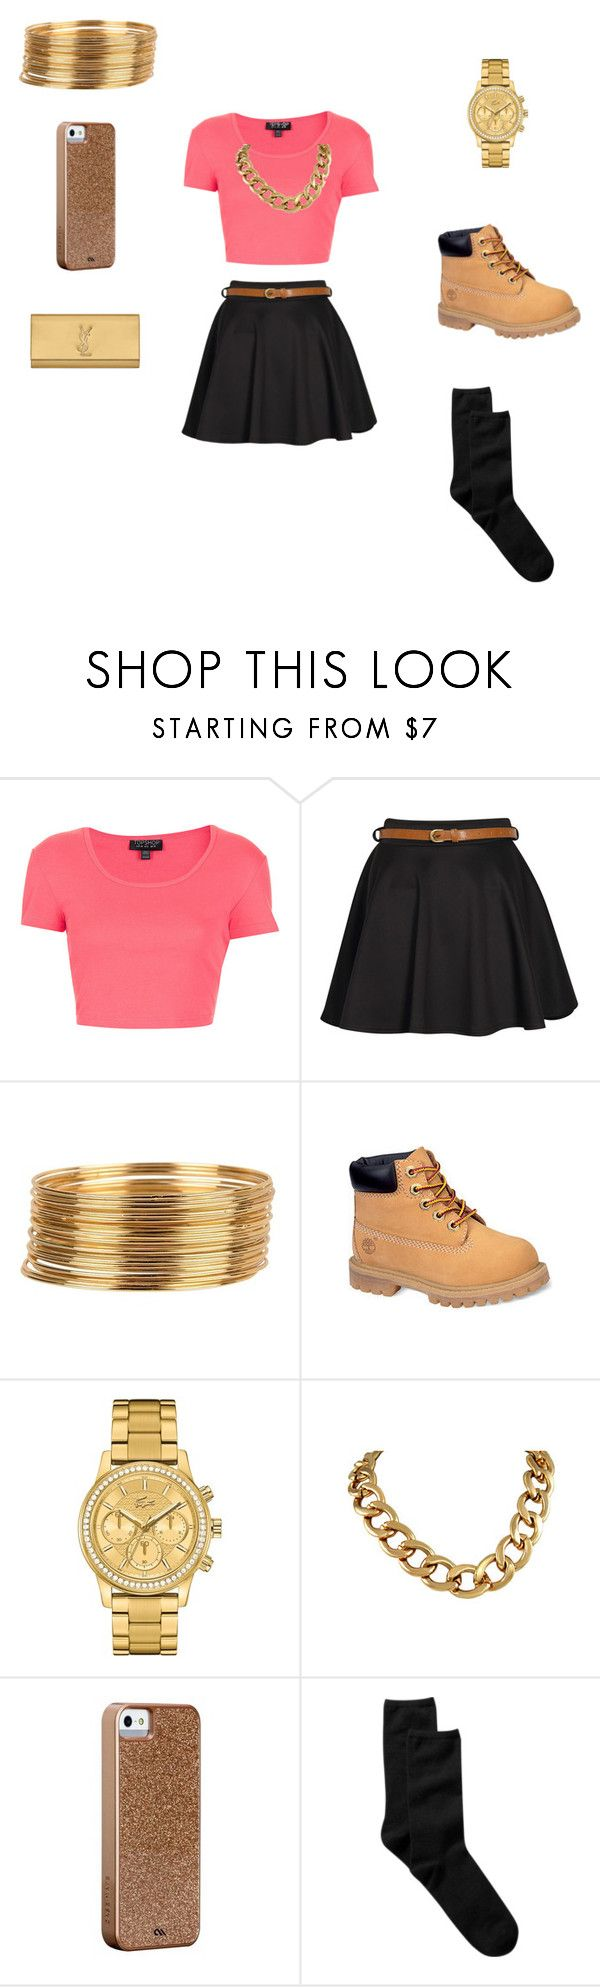 """""""pretty girl swag"""" by thomasjustice ❤ liked on Polyvore featuring Topshop, Boohoo, Armitage Avenue, Timberland, Lacoste, Case-Mate, Gap and Yves Saint Laurent"""